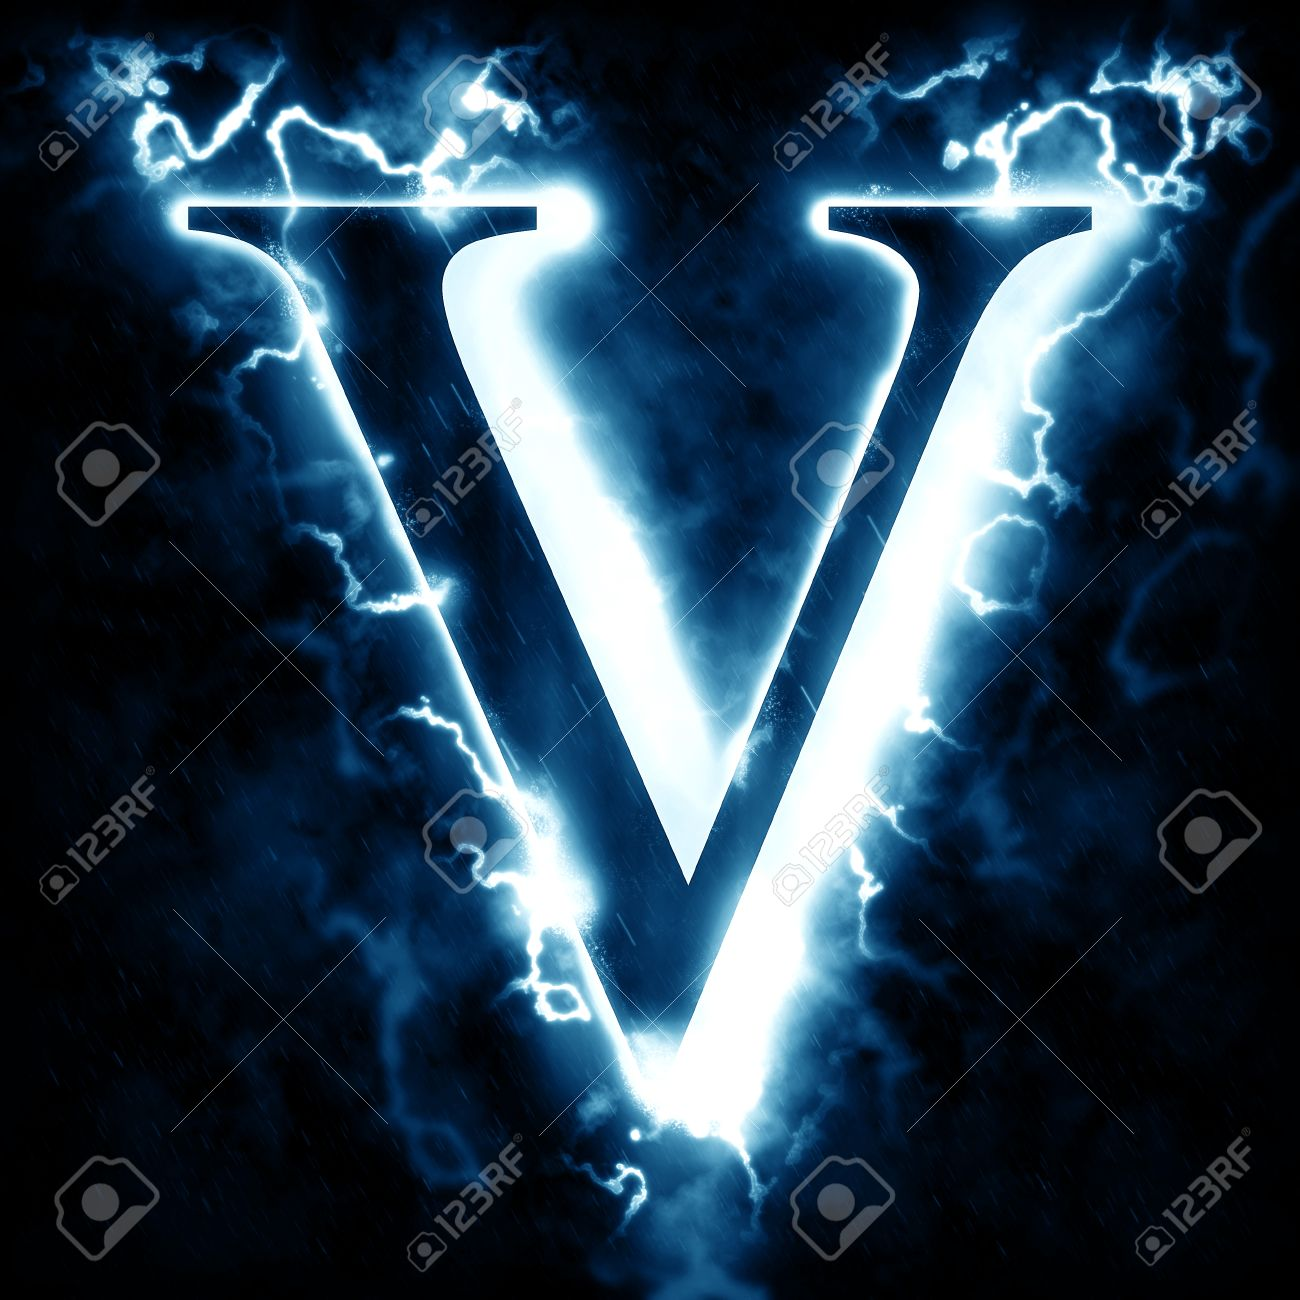 Letter V Stock Photos Royalty Free Images